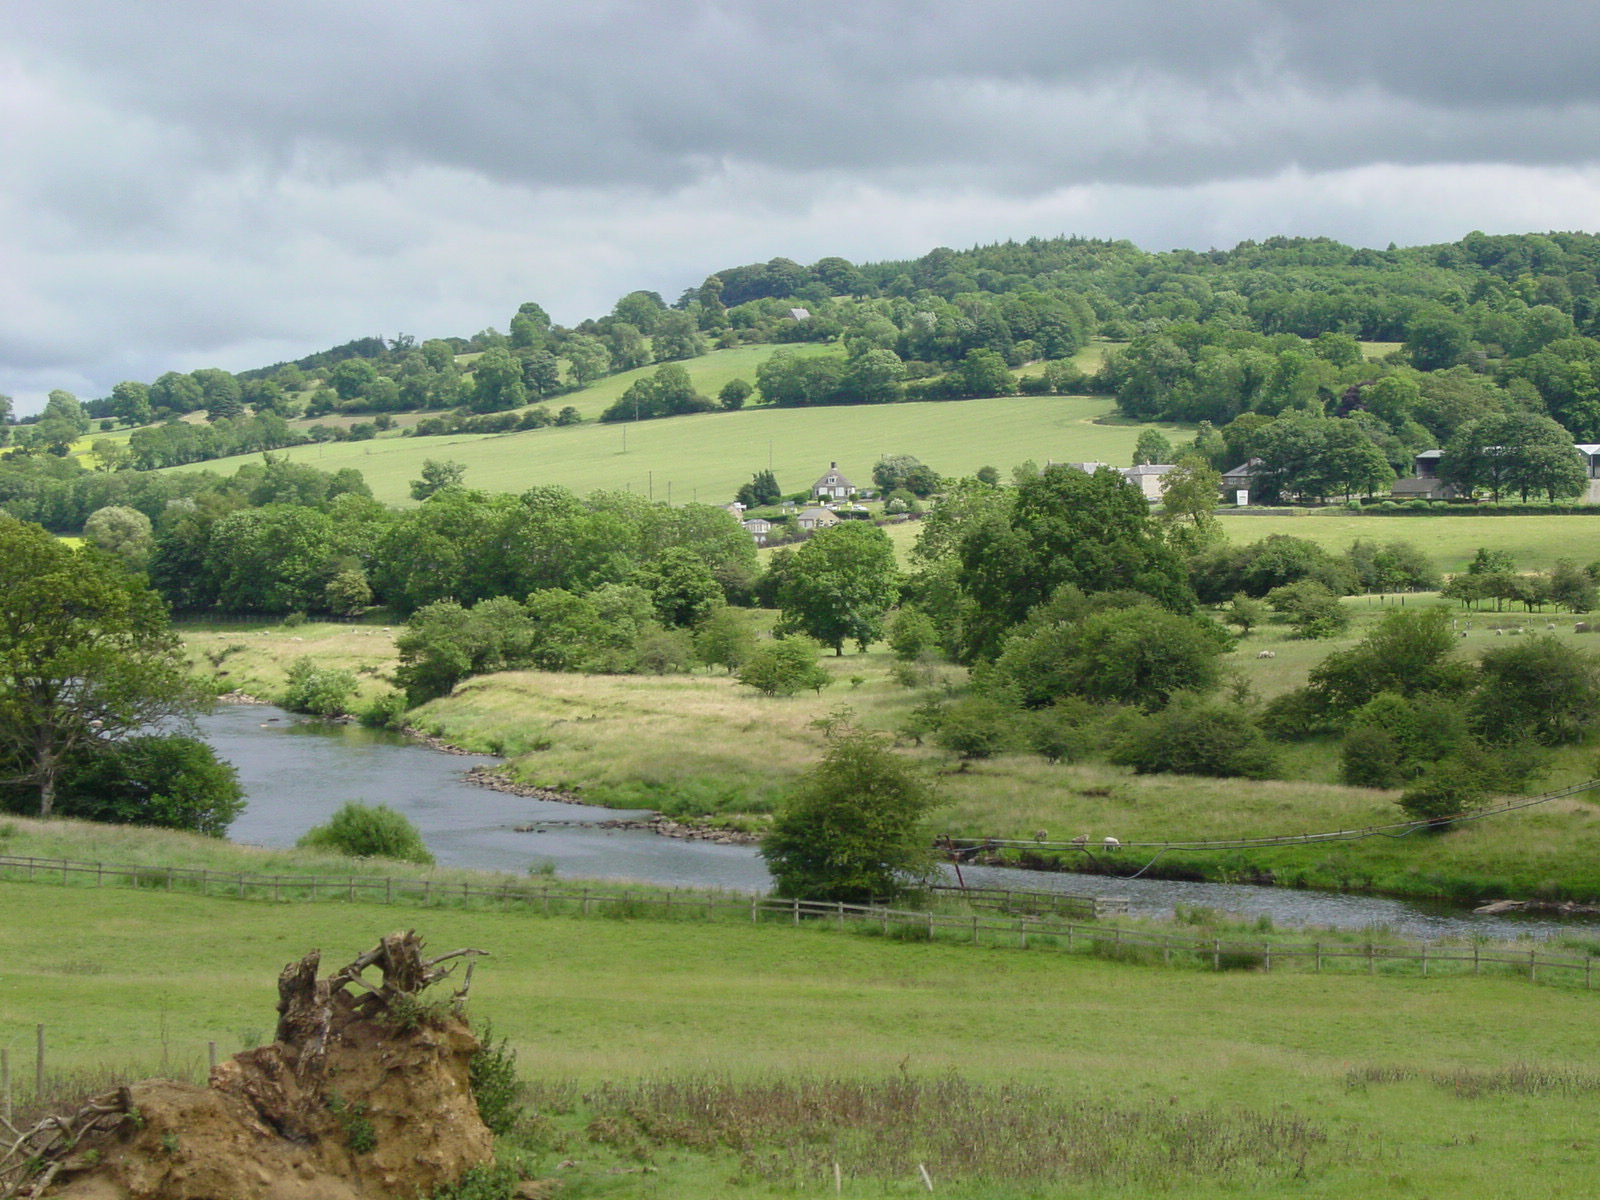 England - Durham - Hadrian's Wall area - Chesters - view across Tyne River to Northumberland countryside